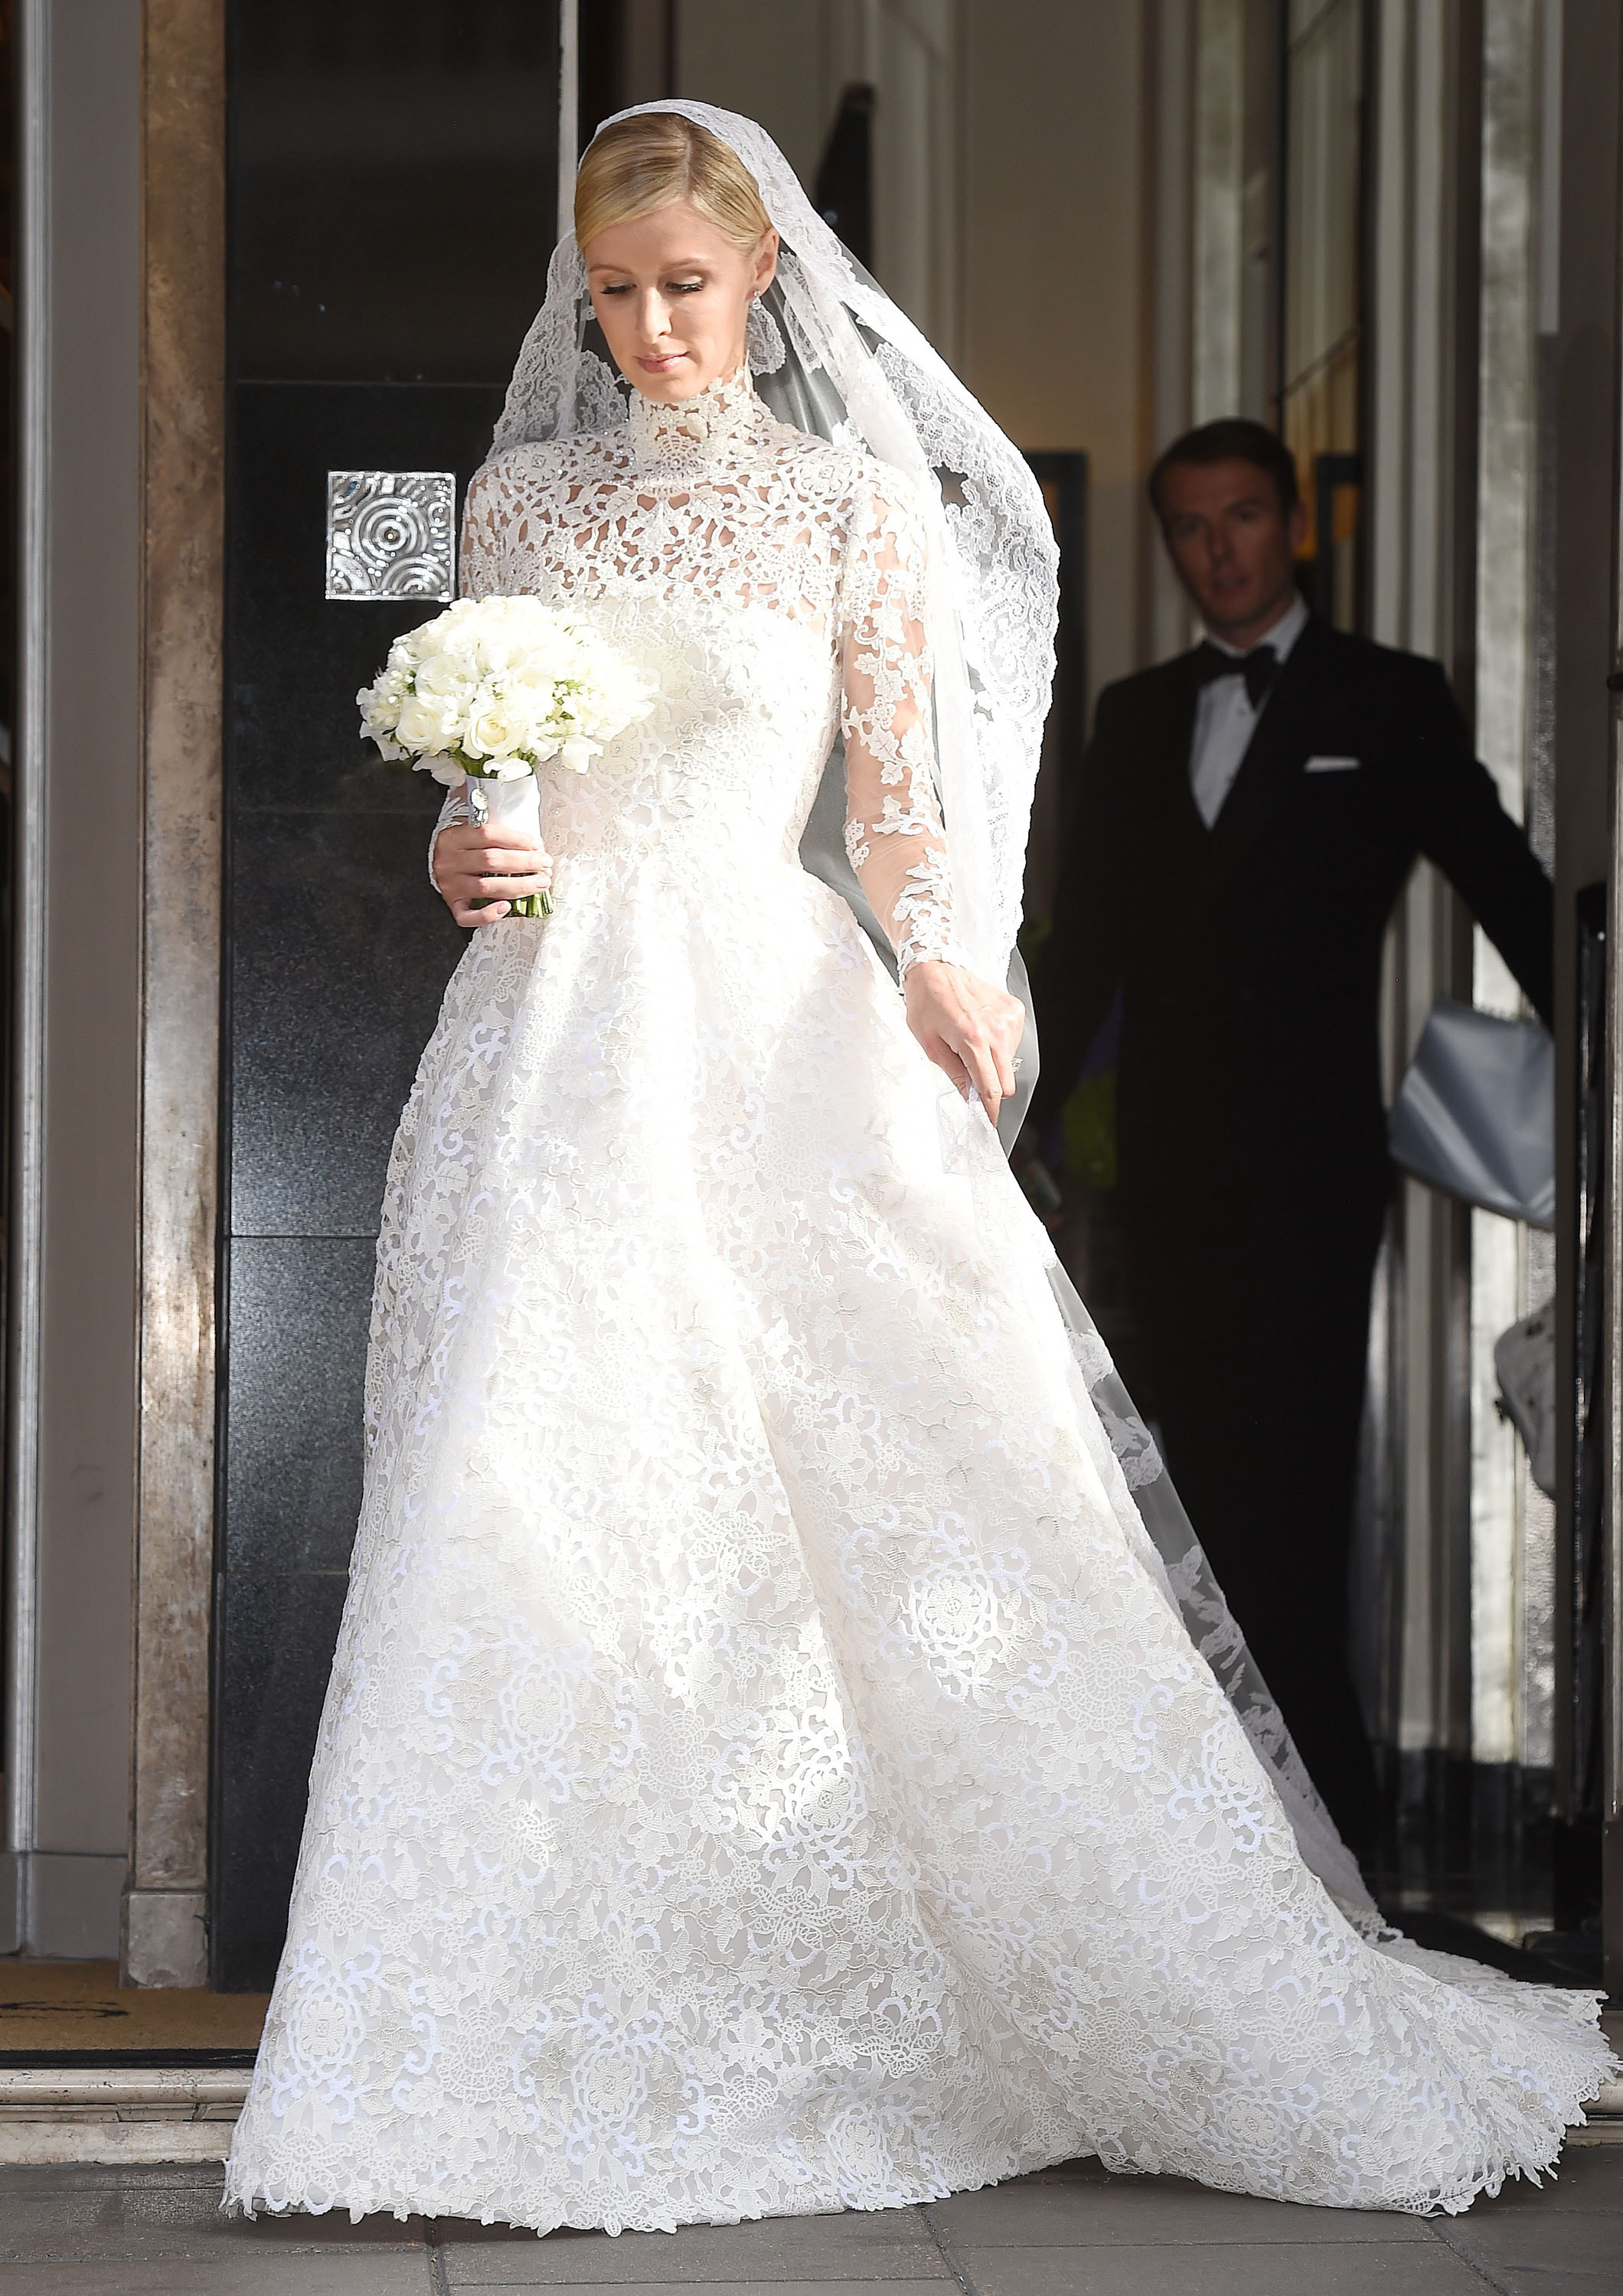 Glomorous Nicky Valentino Wedding Gown Nicky Valentino Wedding Gown Bride Nicky Hilton Nicky Hilton Wedding Dress Nicky Hilton Wedding Dress Cost wedding dress Nicky Hilton Wedding Dress